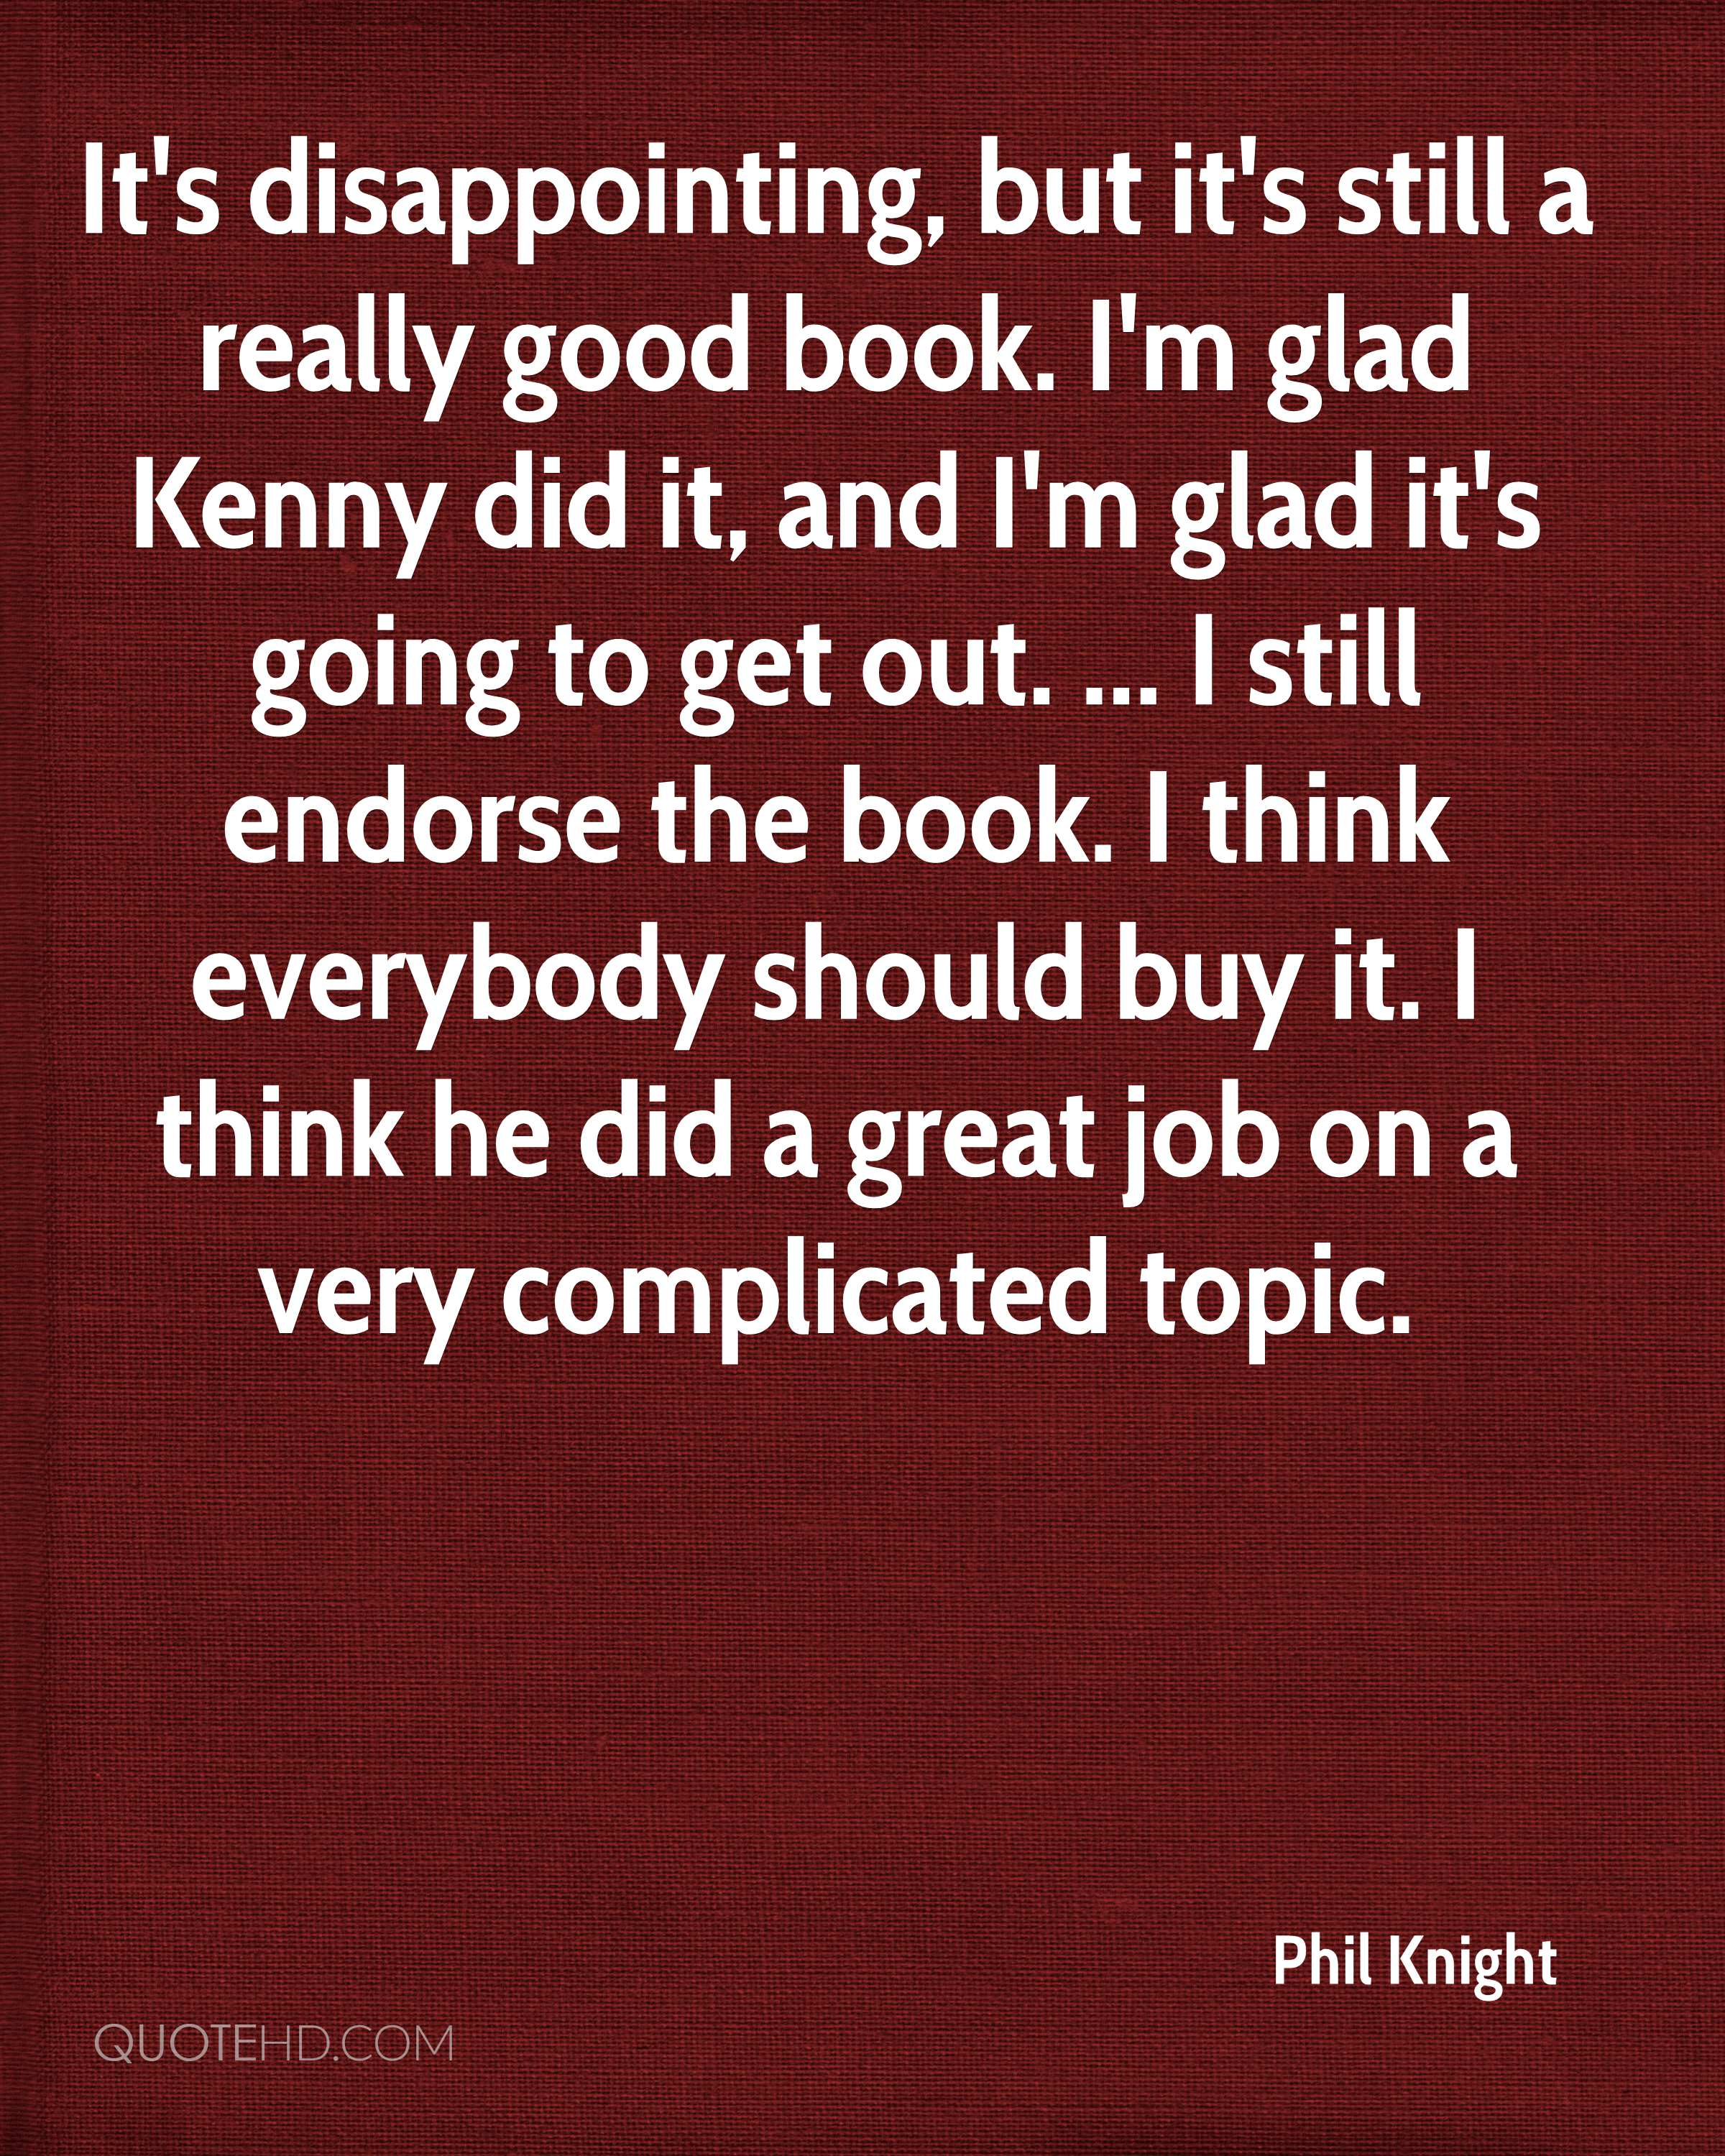 It's disappointing, but it's still a really good book. I'm glad Kenny did it, and I'm glad it's going to get out. ... I still endorse the book. I think everybody should buy it. I think he did a great job on a very complicated topic.